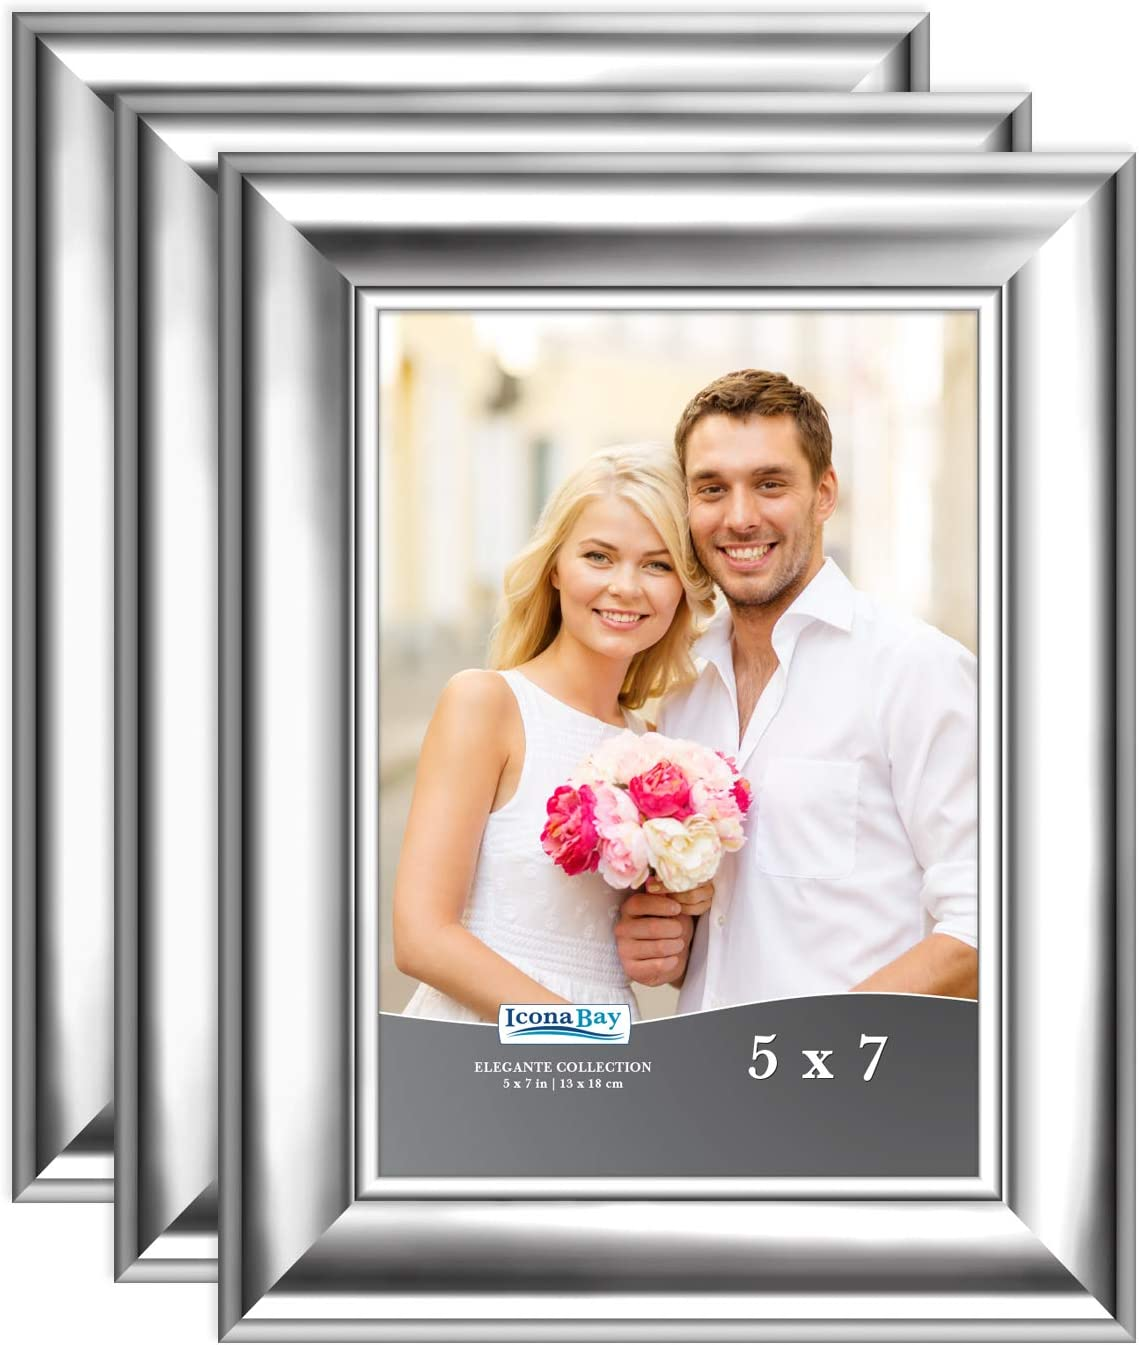 Amazon Com Icona Bay 5x7 Picture Frames Silver 3 Pack Contemporary Photo Frames 5 X 7 Wall Mount Or Table Top Elegante Collection